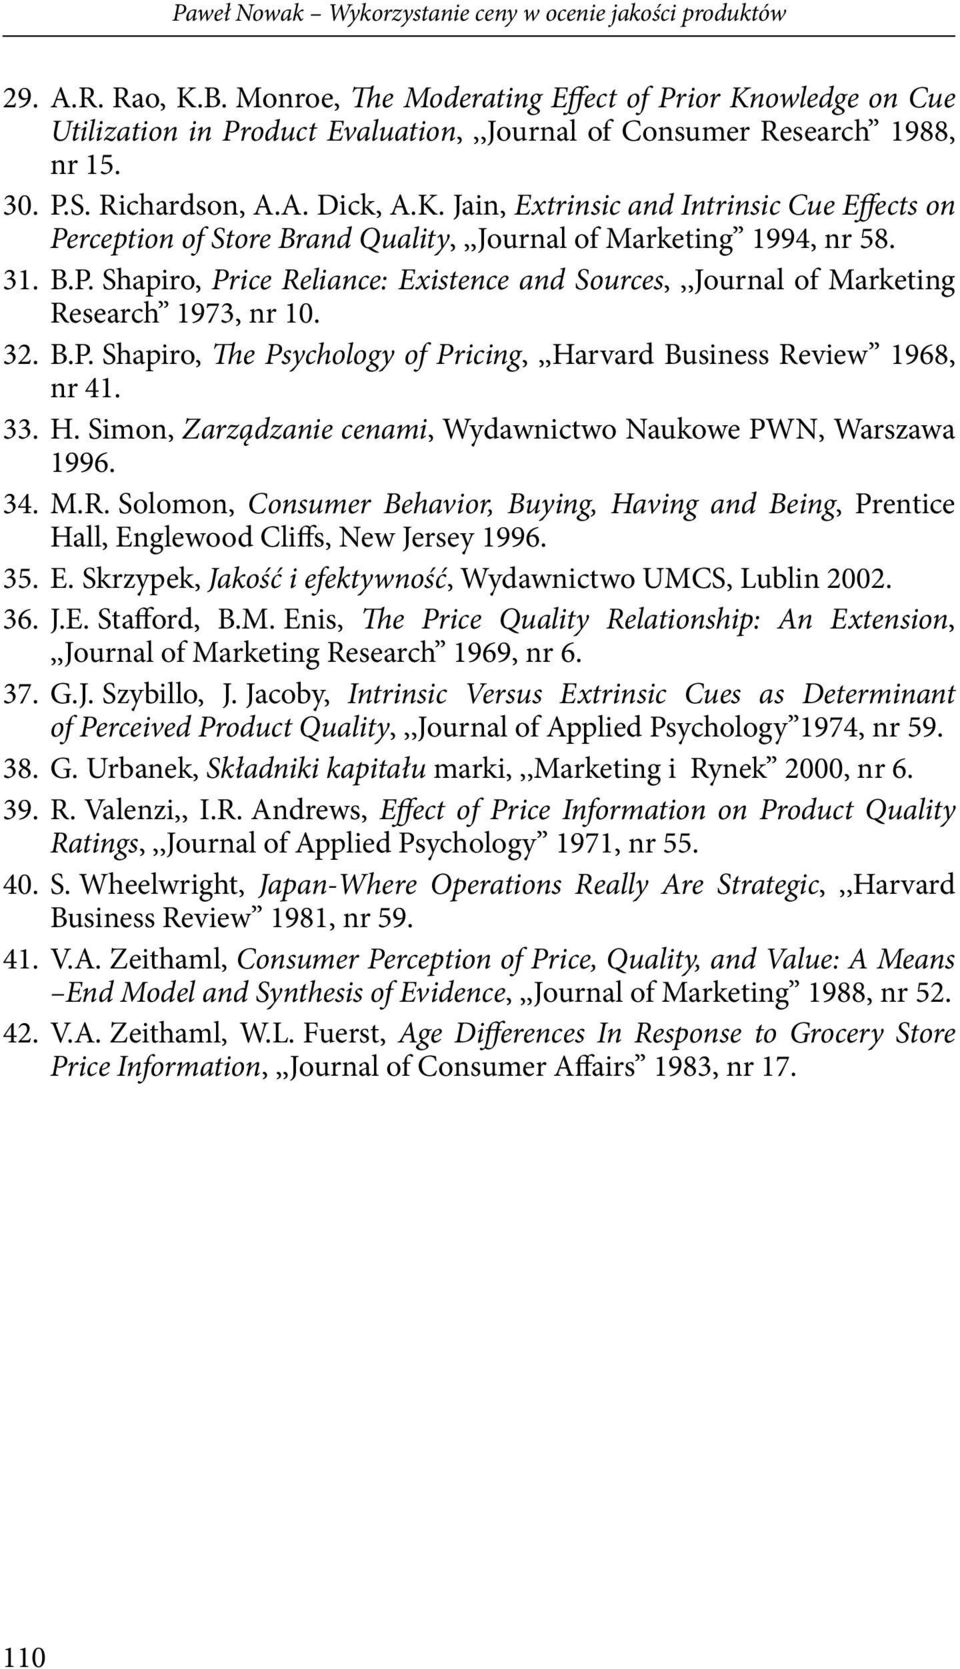 31. B.P. Shapiro, Price Reliance: Existence and Sources,,,Journal of Marketing Research 1973, nr 10. 32. B.P. Shapiro, The Psychology of Pricing,,,Harvard Business Review 1968, nr 41. 33. H.